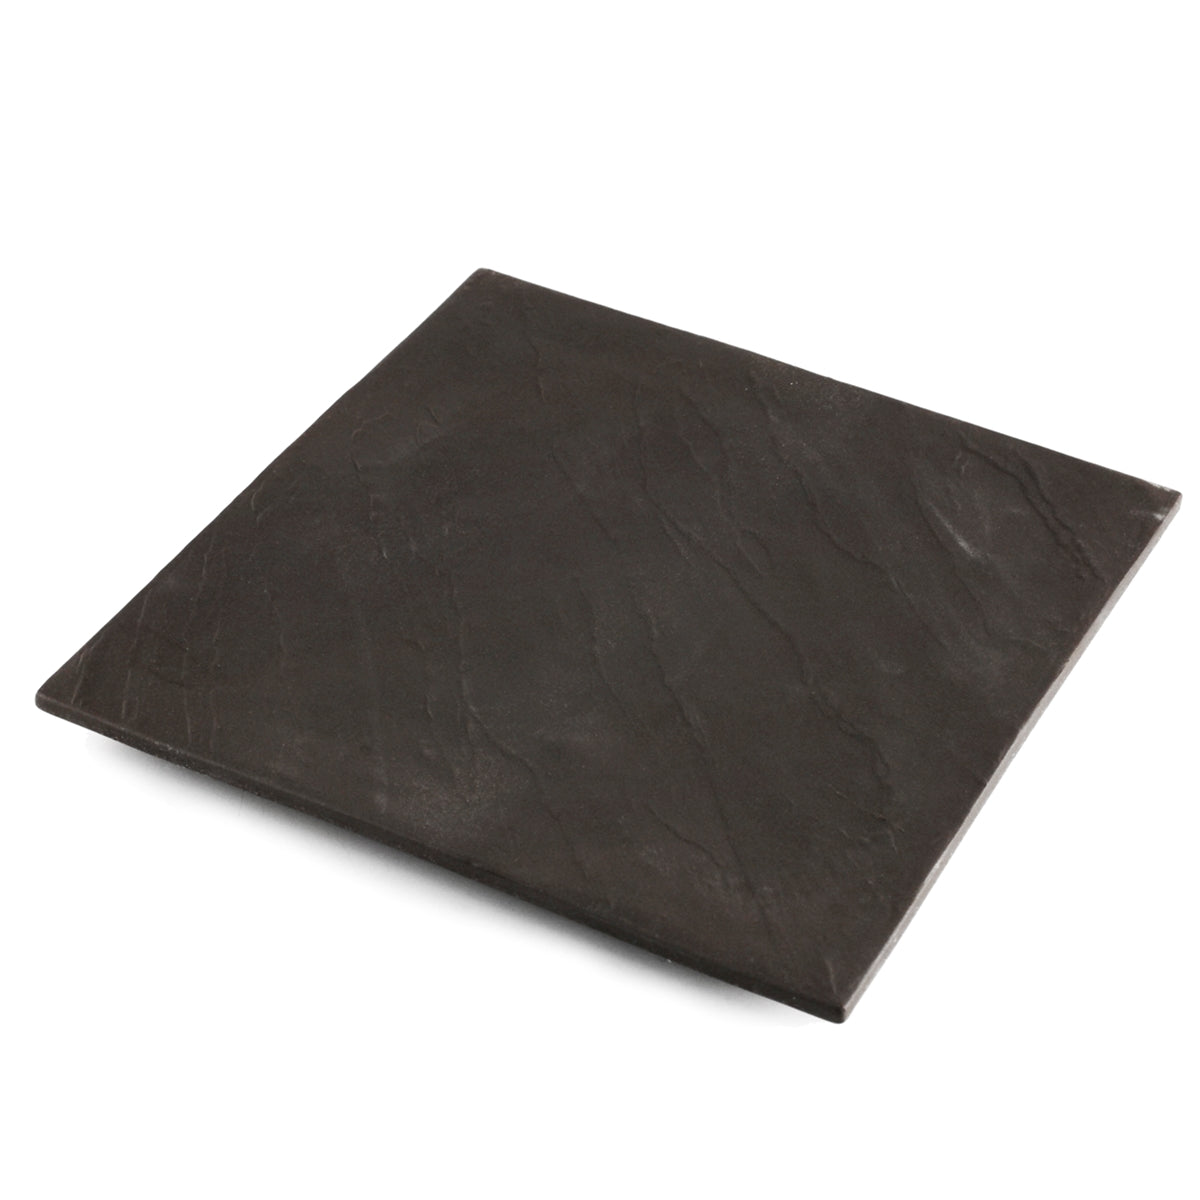 "Charcoal Gray Square Dinner Plate 8.46"" x 8.46"""